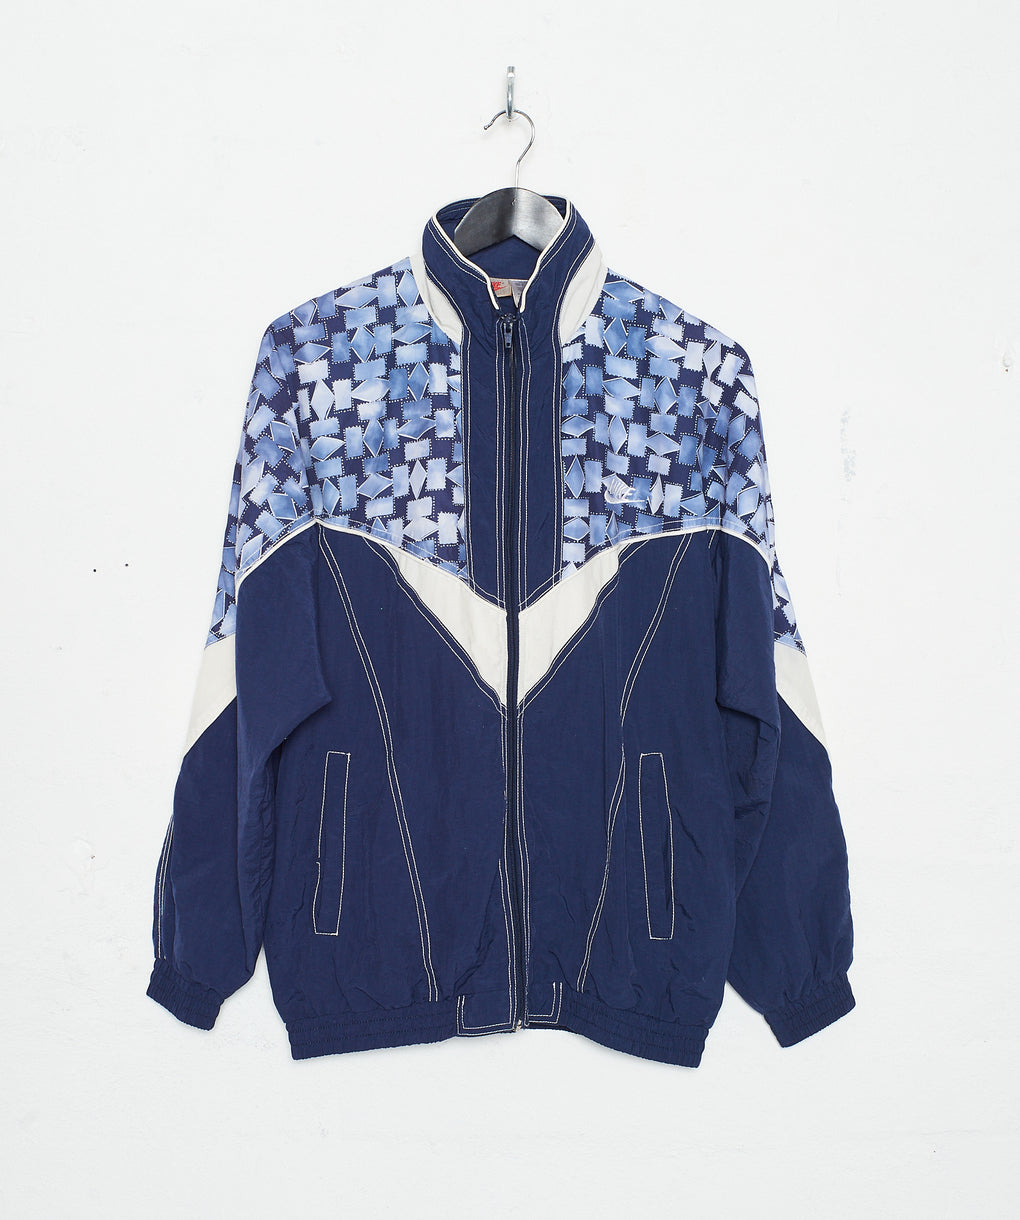 NIKE SPORTS JACKET (S) - FROTHLYF